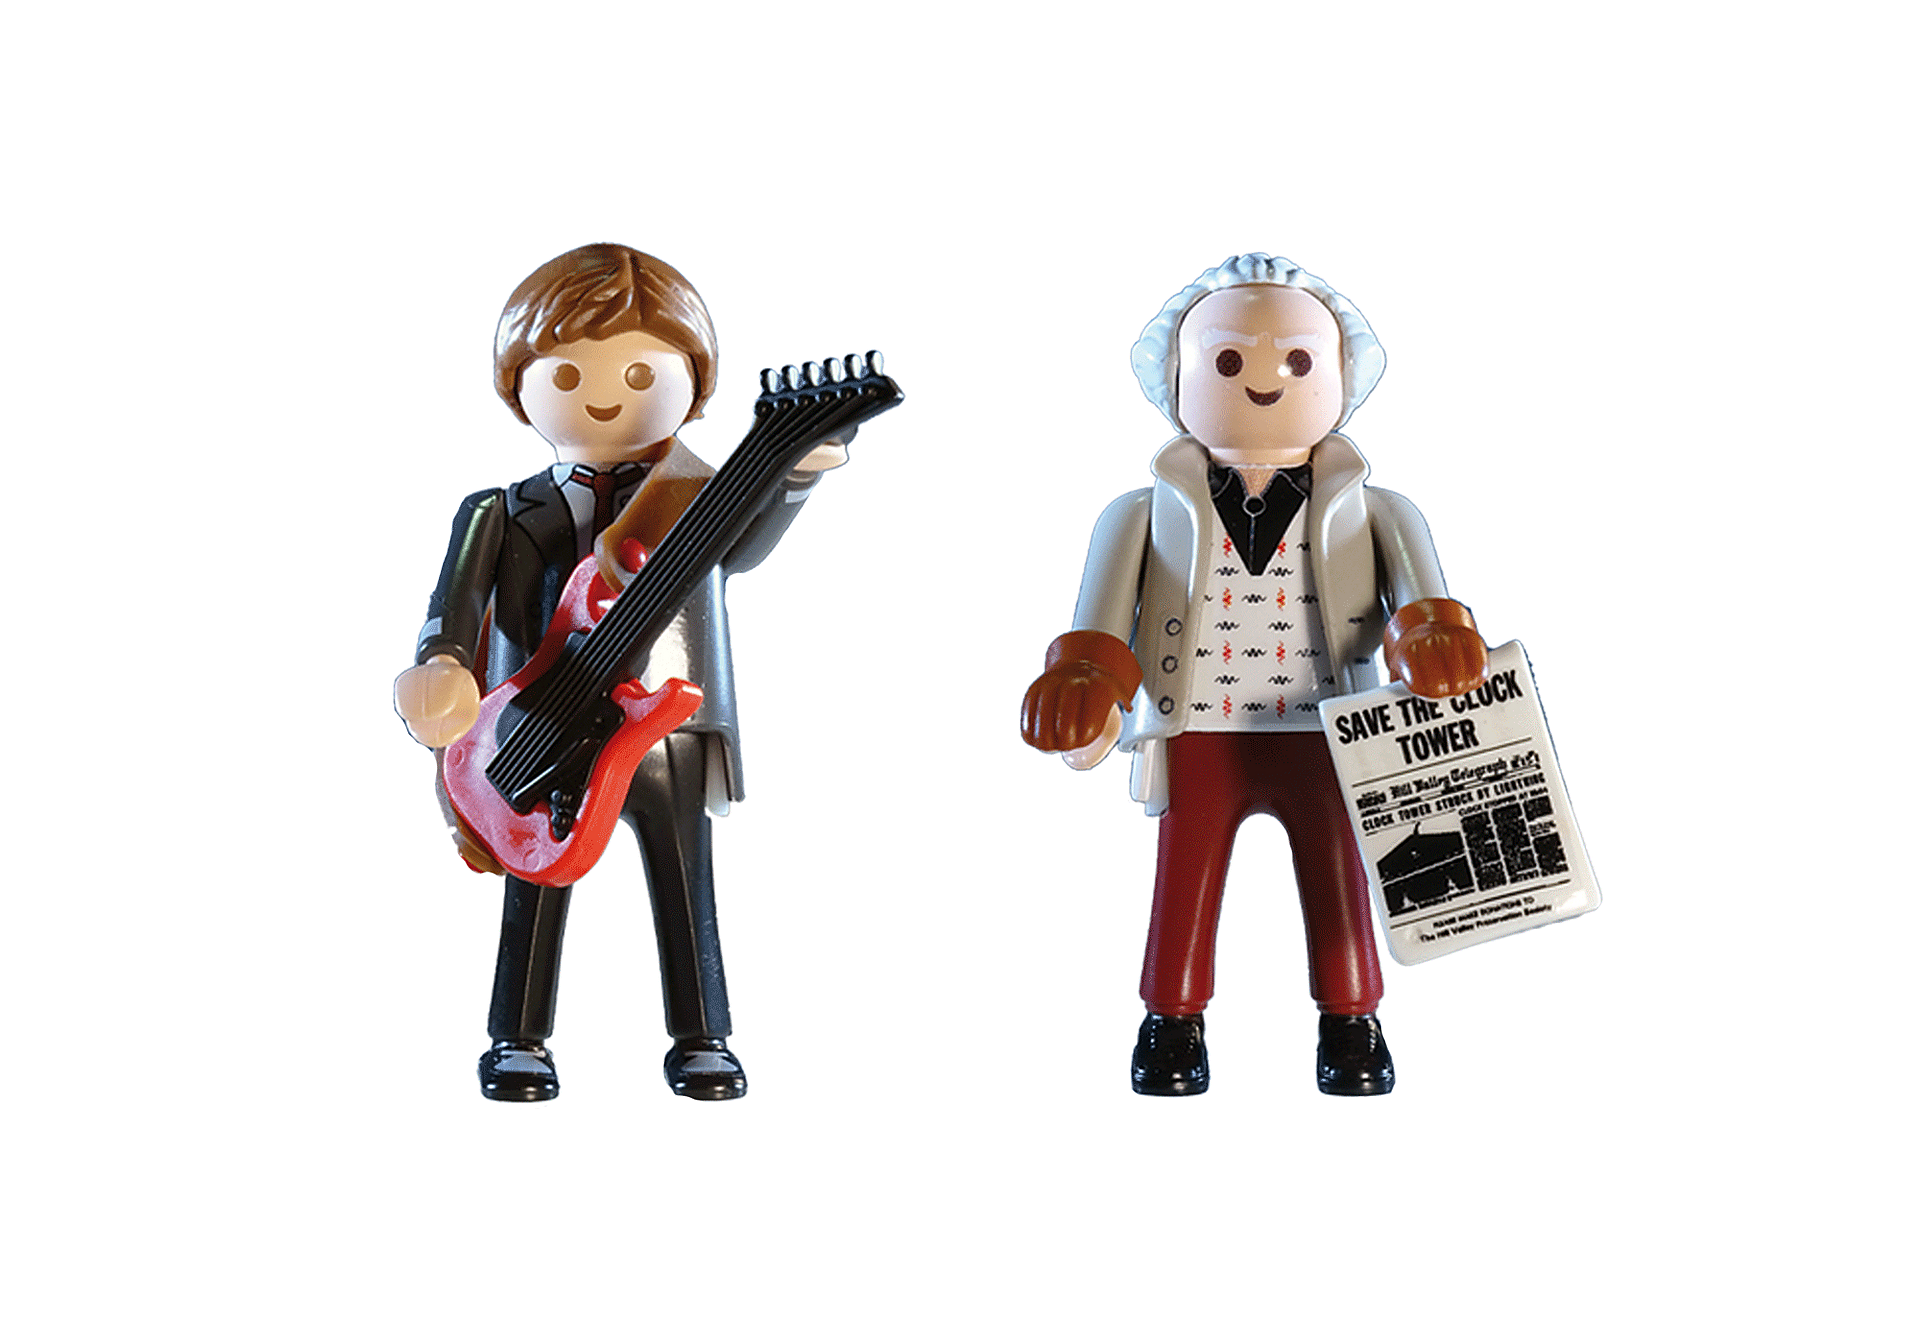 70459 Back to the Future Marty Mcfly and Dr. Emmet Brown zoom image2